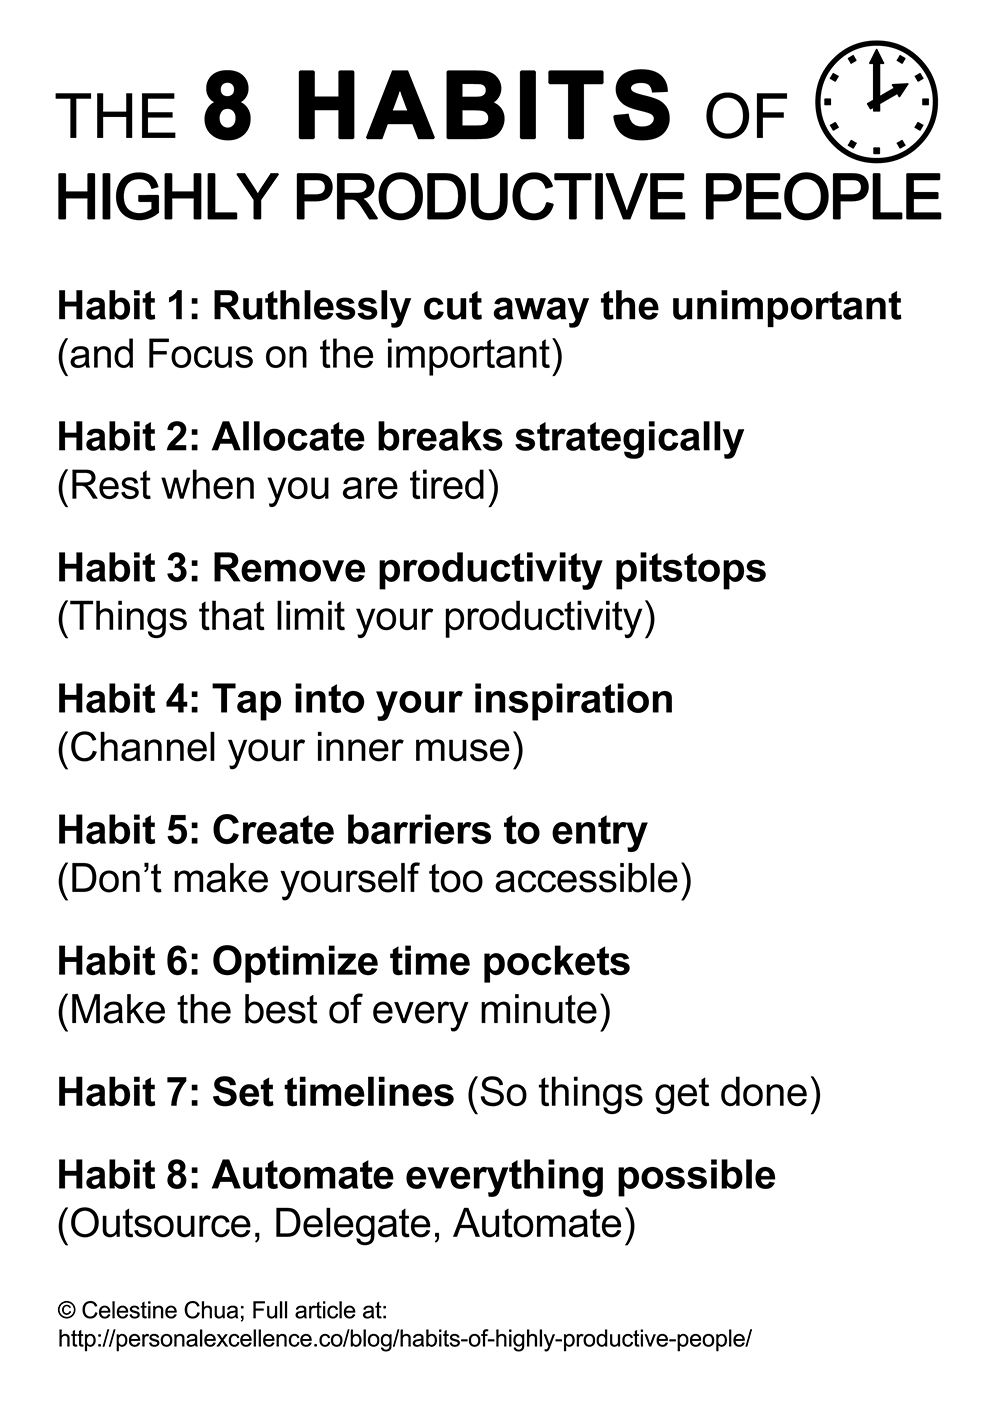 The 8 Habits Of Highly Productive People Time Management